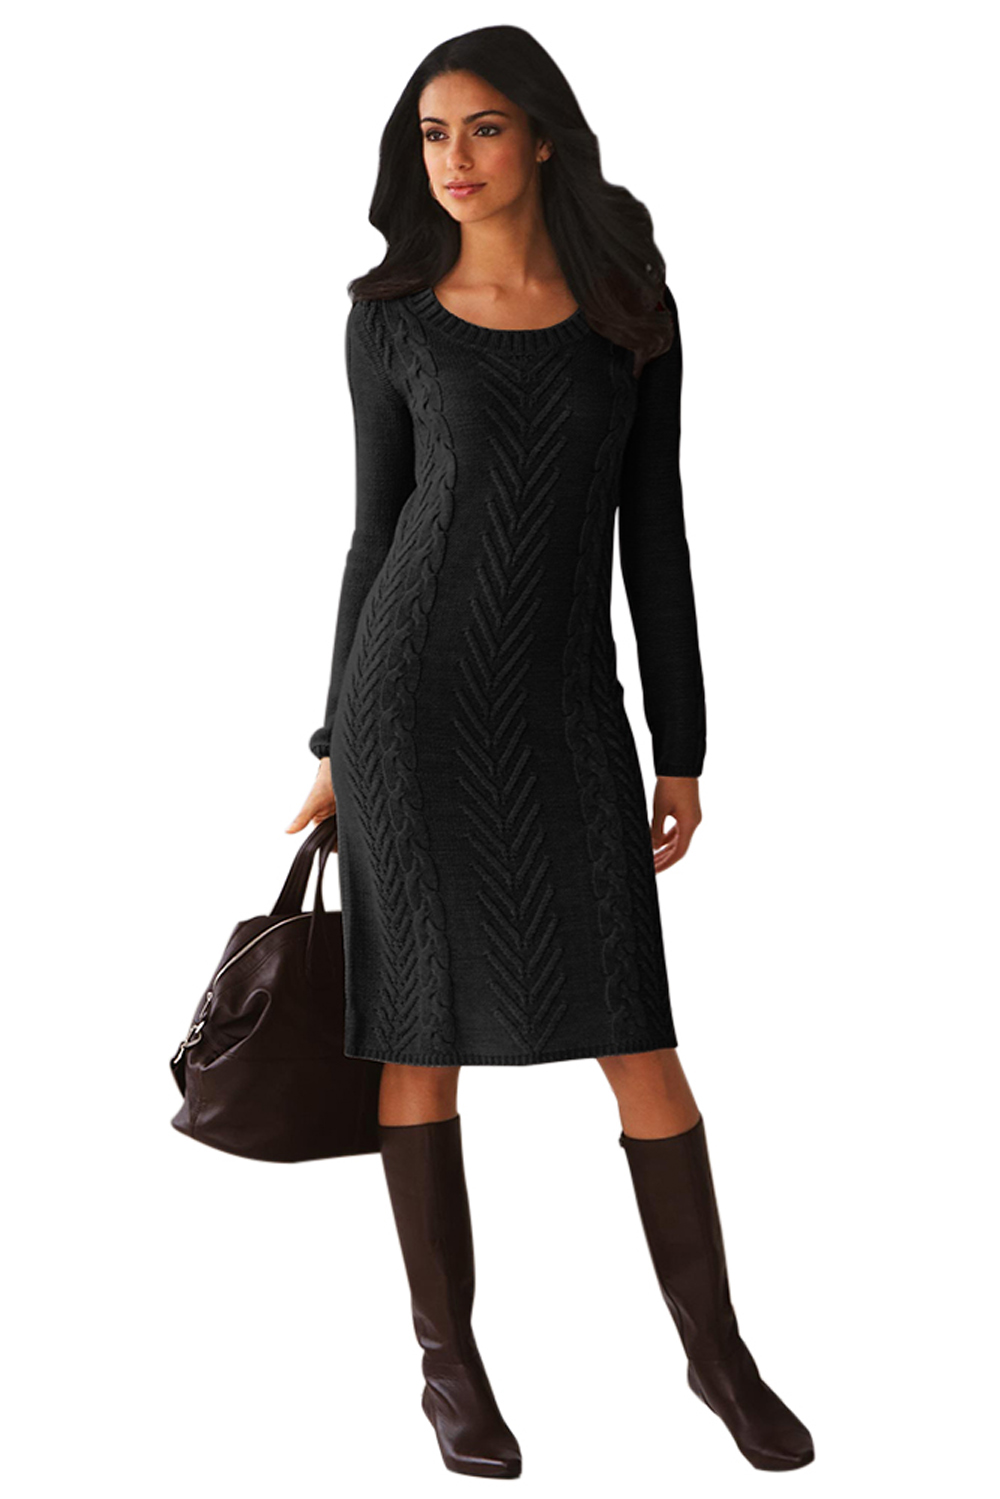 Black Knit Sweater Dress Winter Sexy Long Sleeve Hand Knitted Fitted Sweater Dresses For Women O